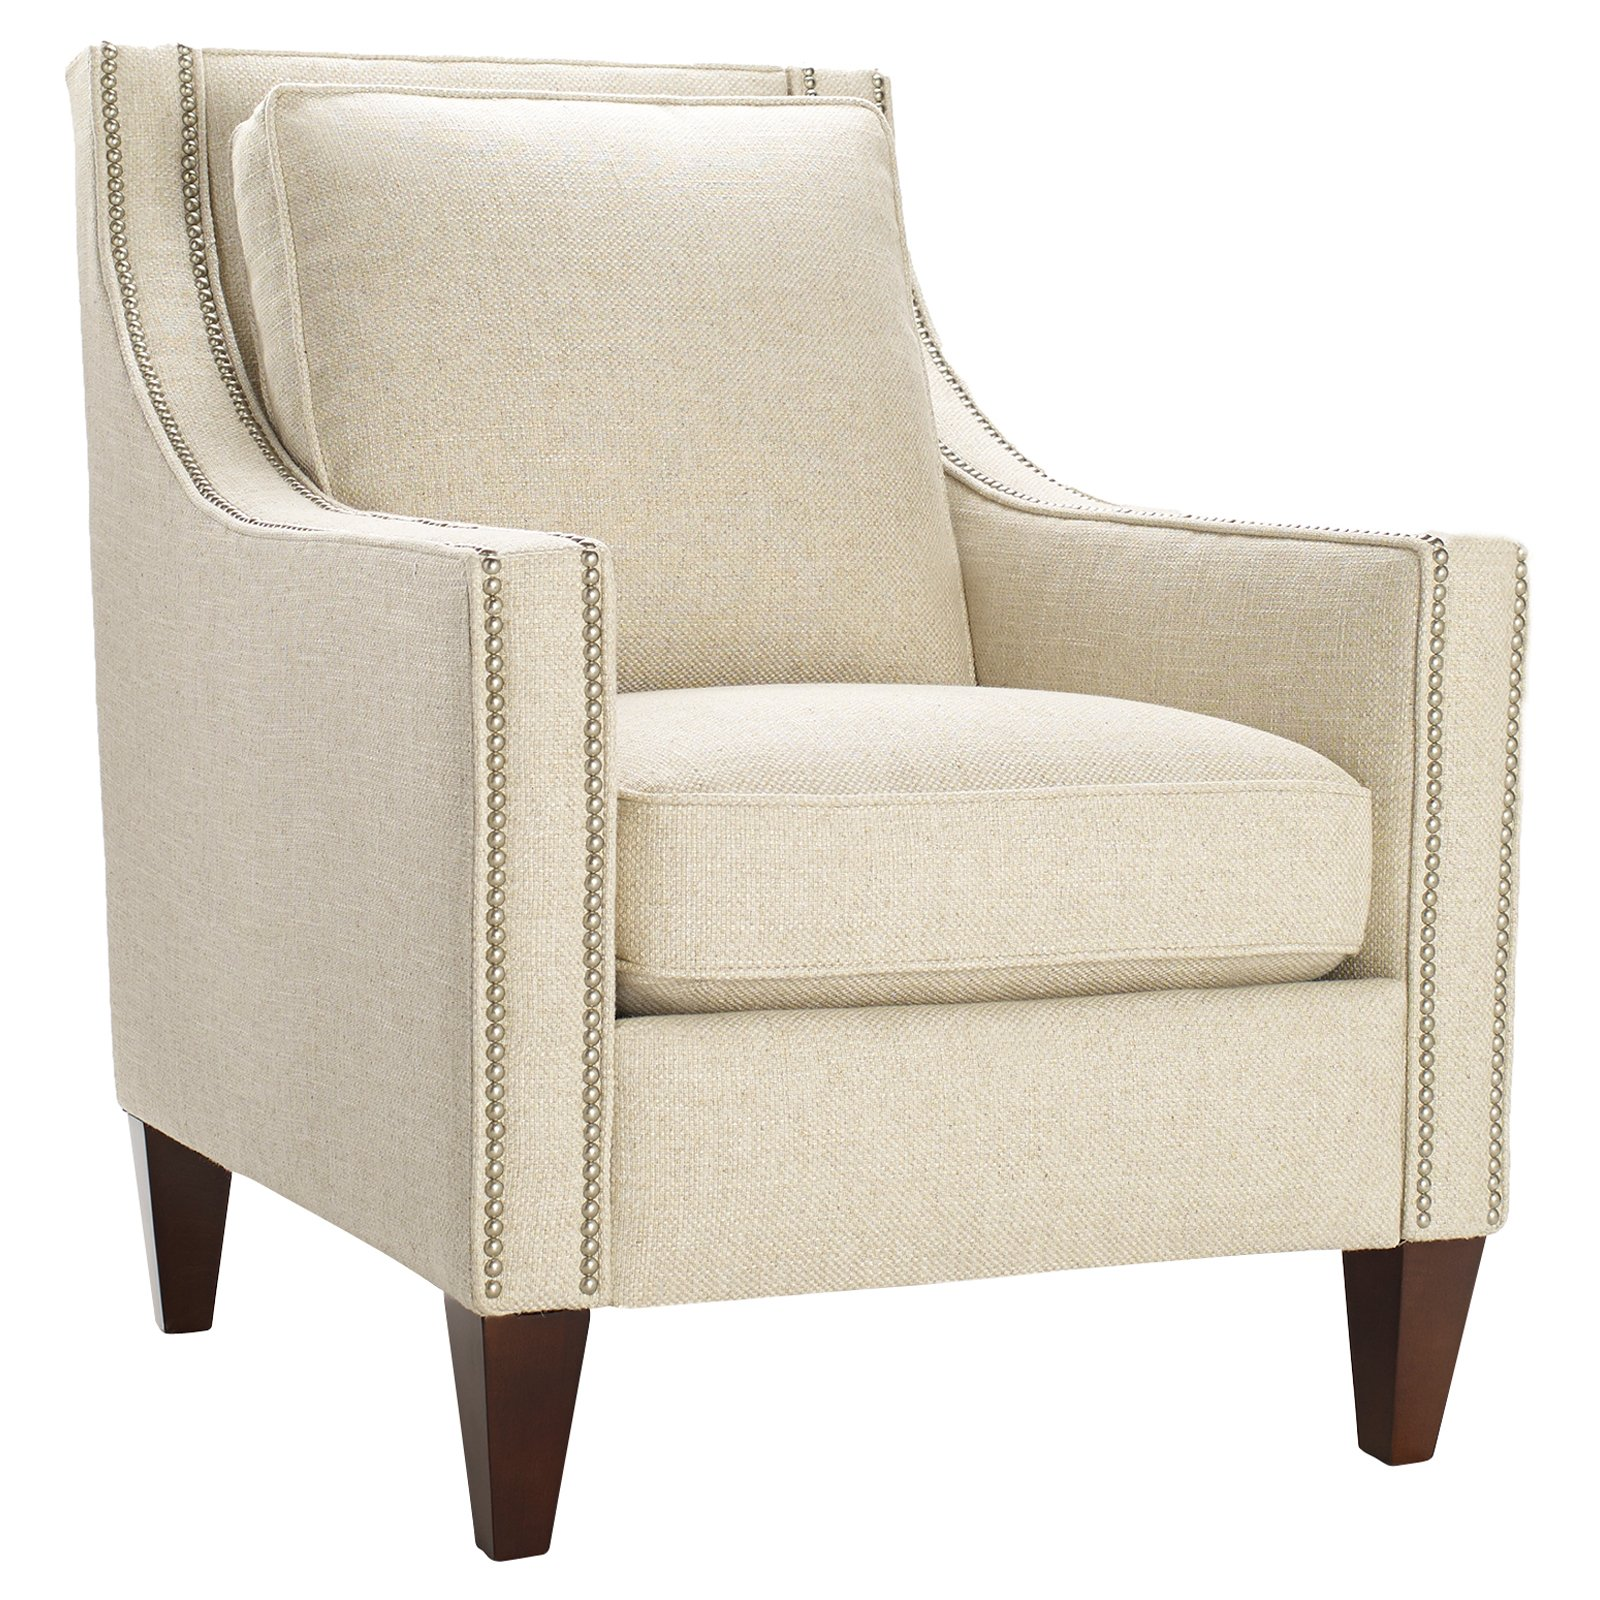 Awesome Chairs For Bedrooms Cool Accent Chairs Homesfeed